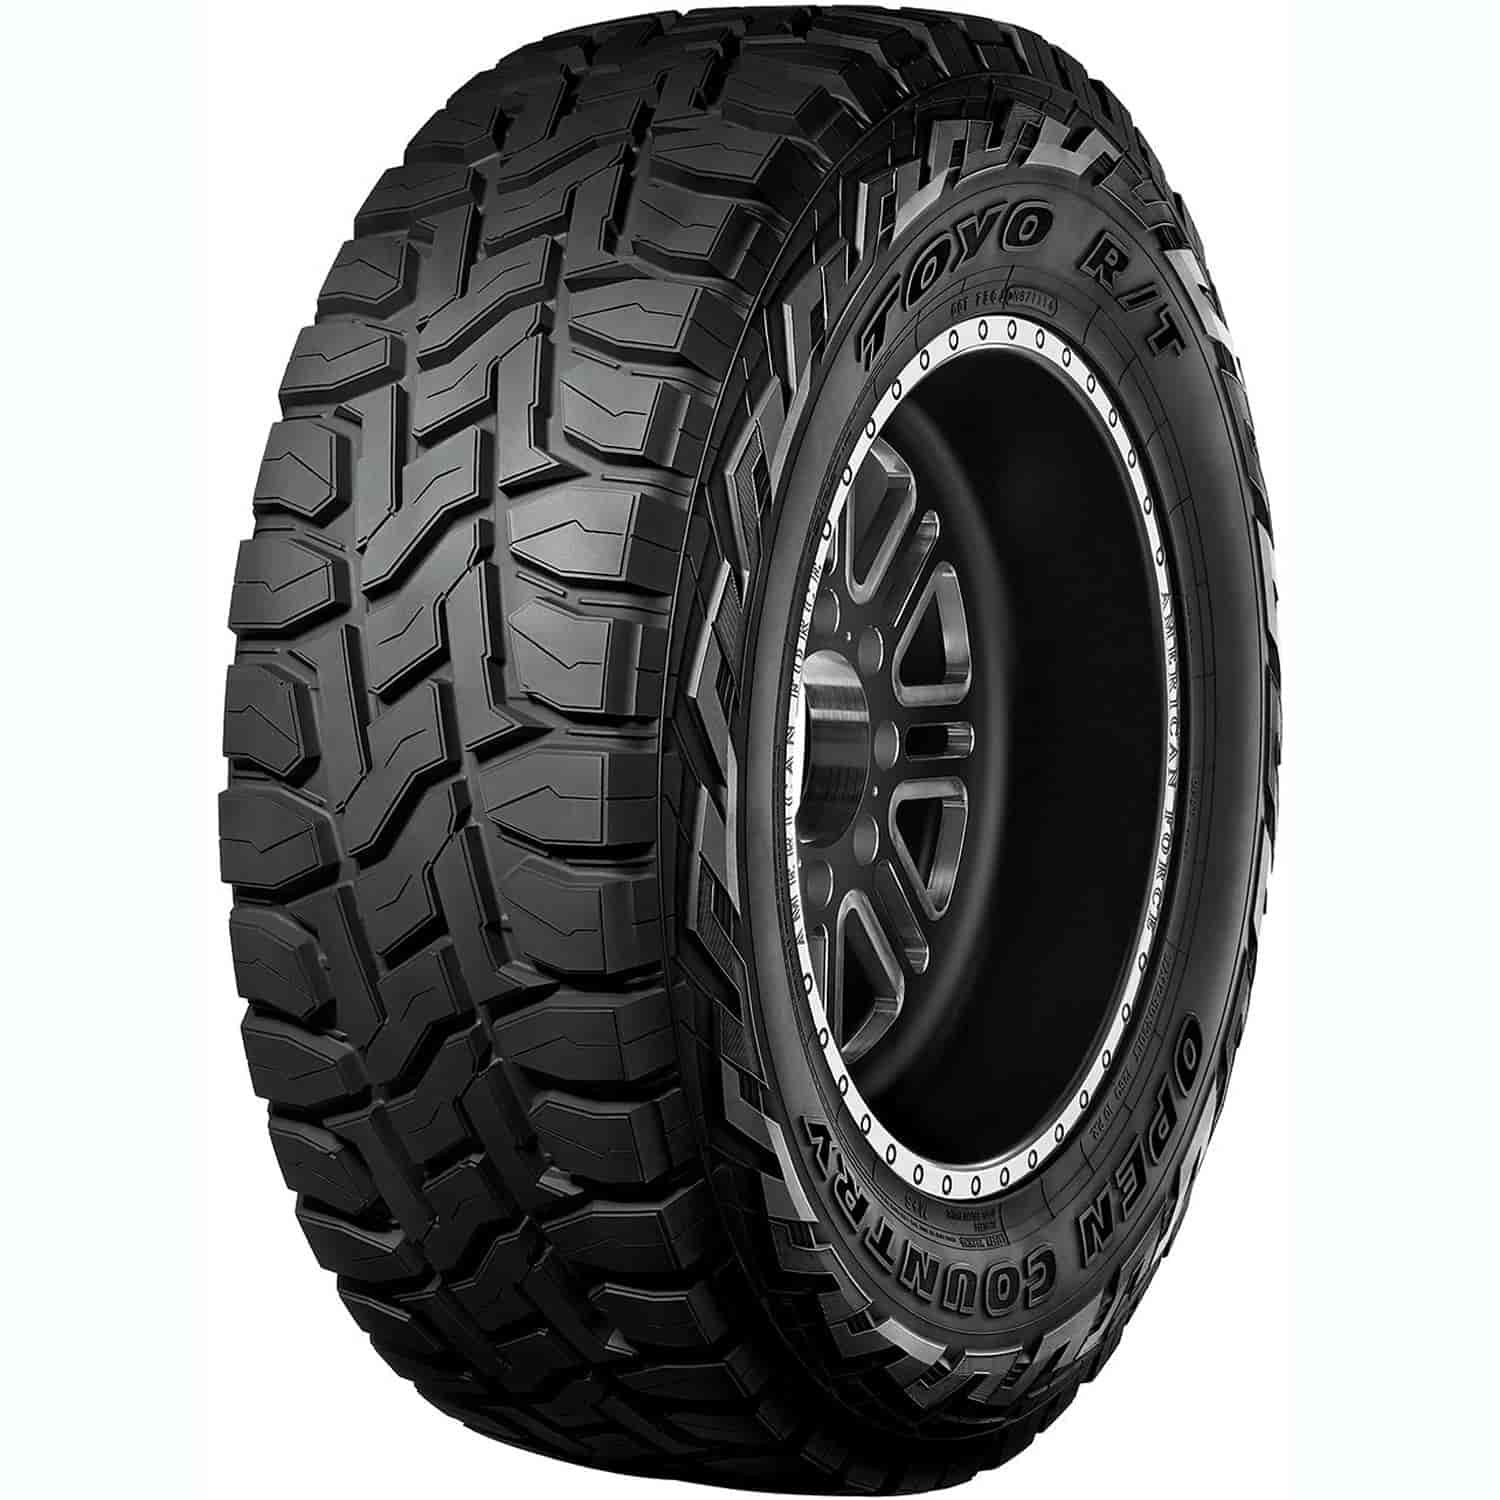 Toyo Tires OPEN COUNTRY R T LT285 60R18 122Q